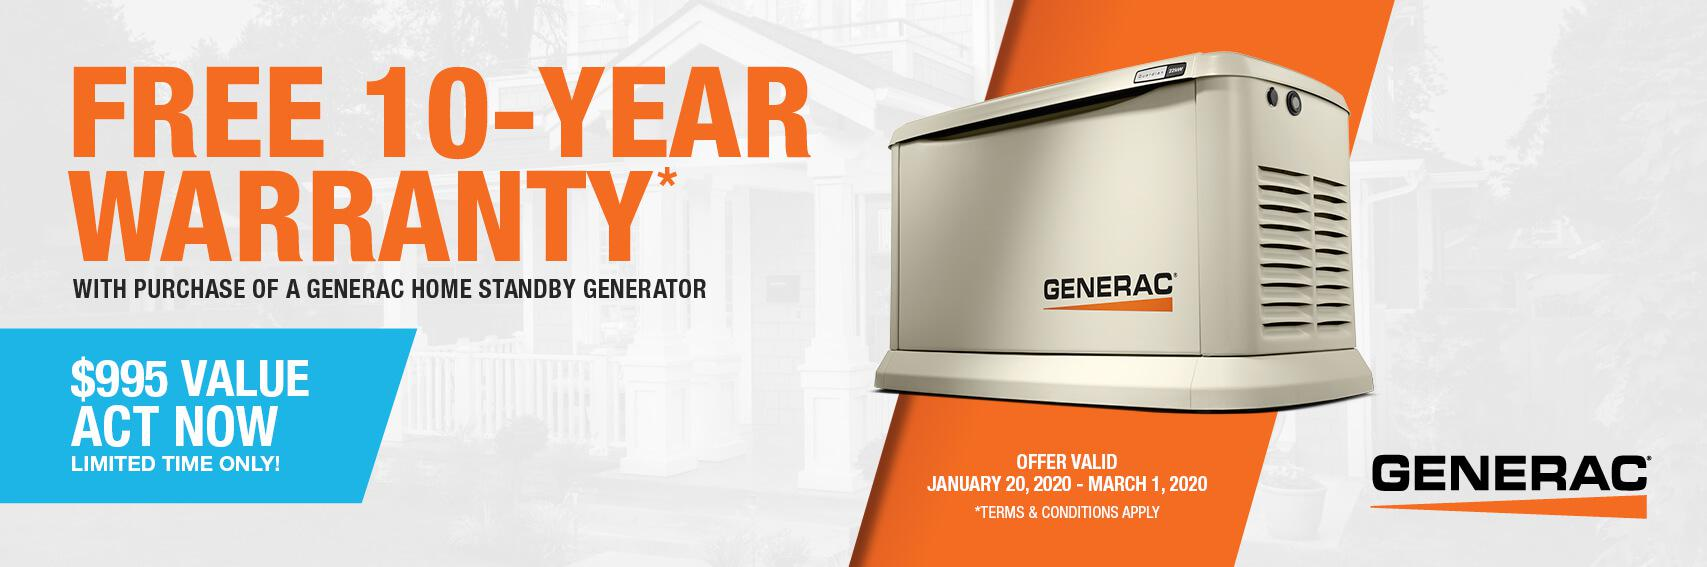 Homestandby Generator Deal | Warranty Offer | Generac Dealer | Sandpoint, ID